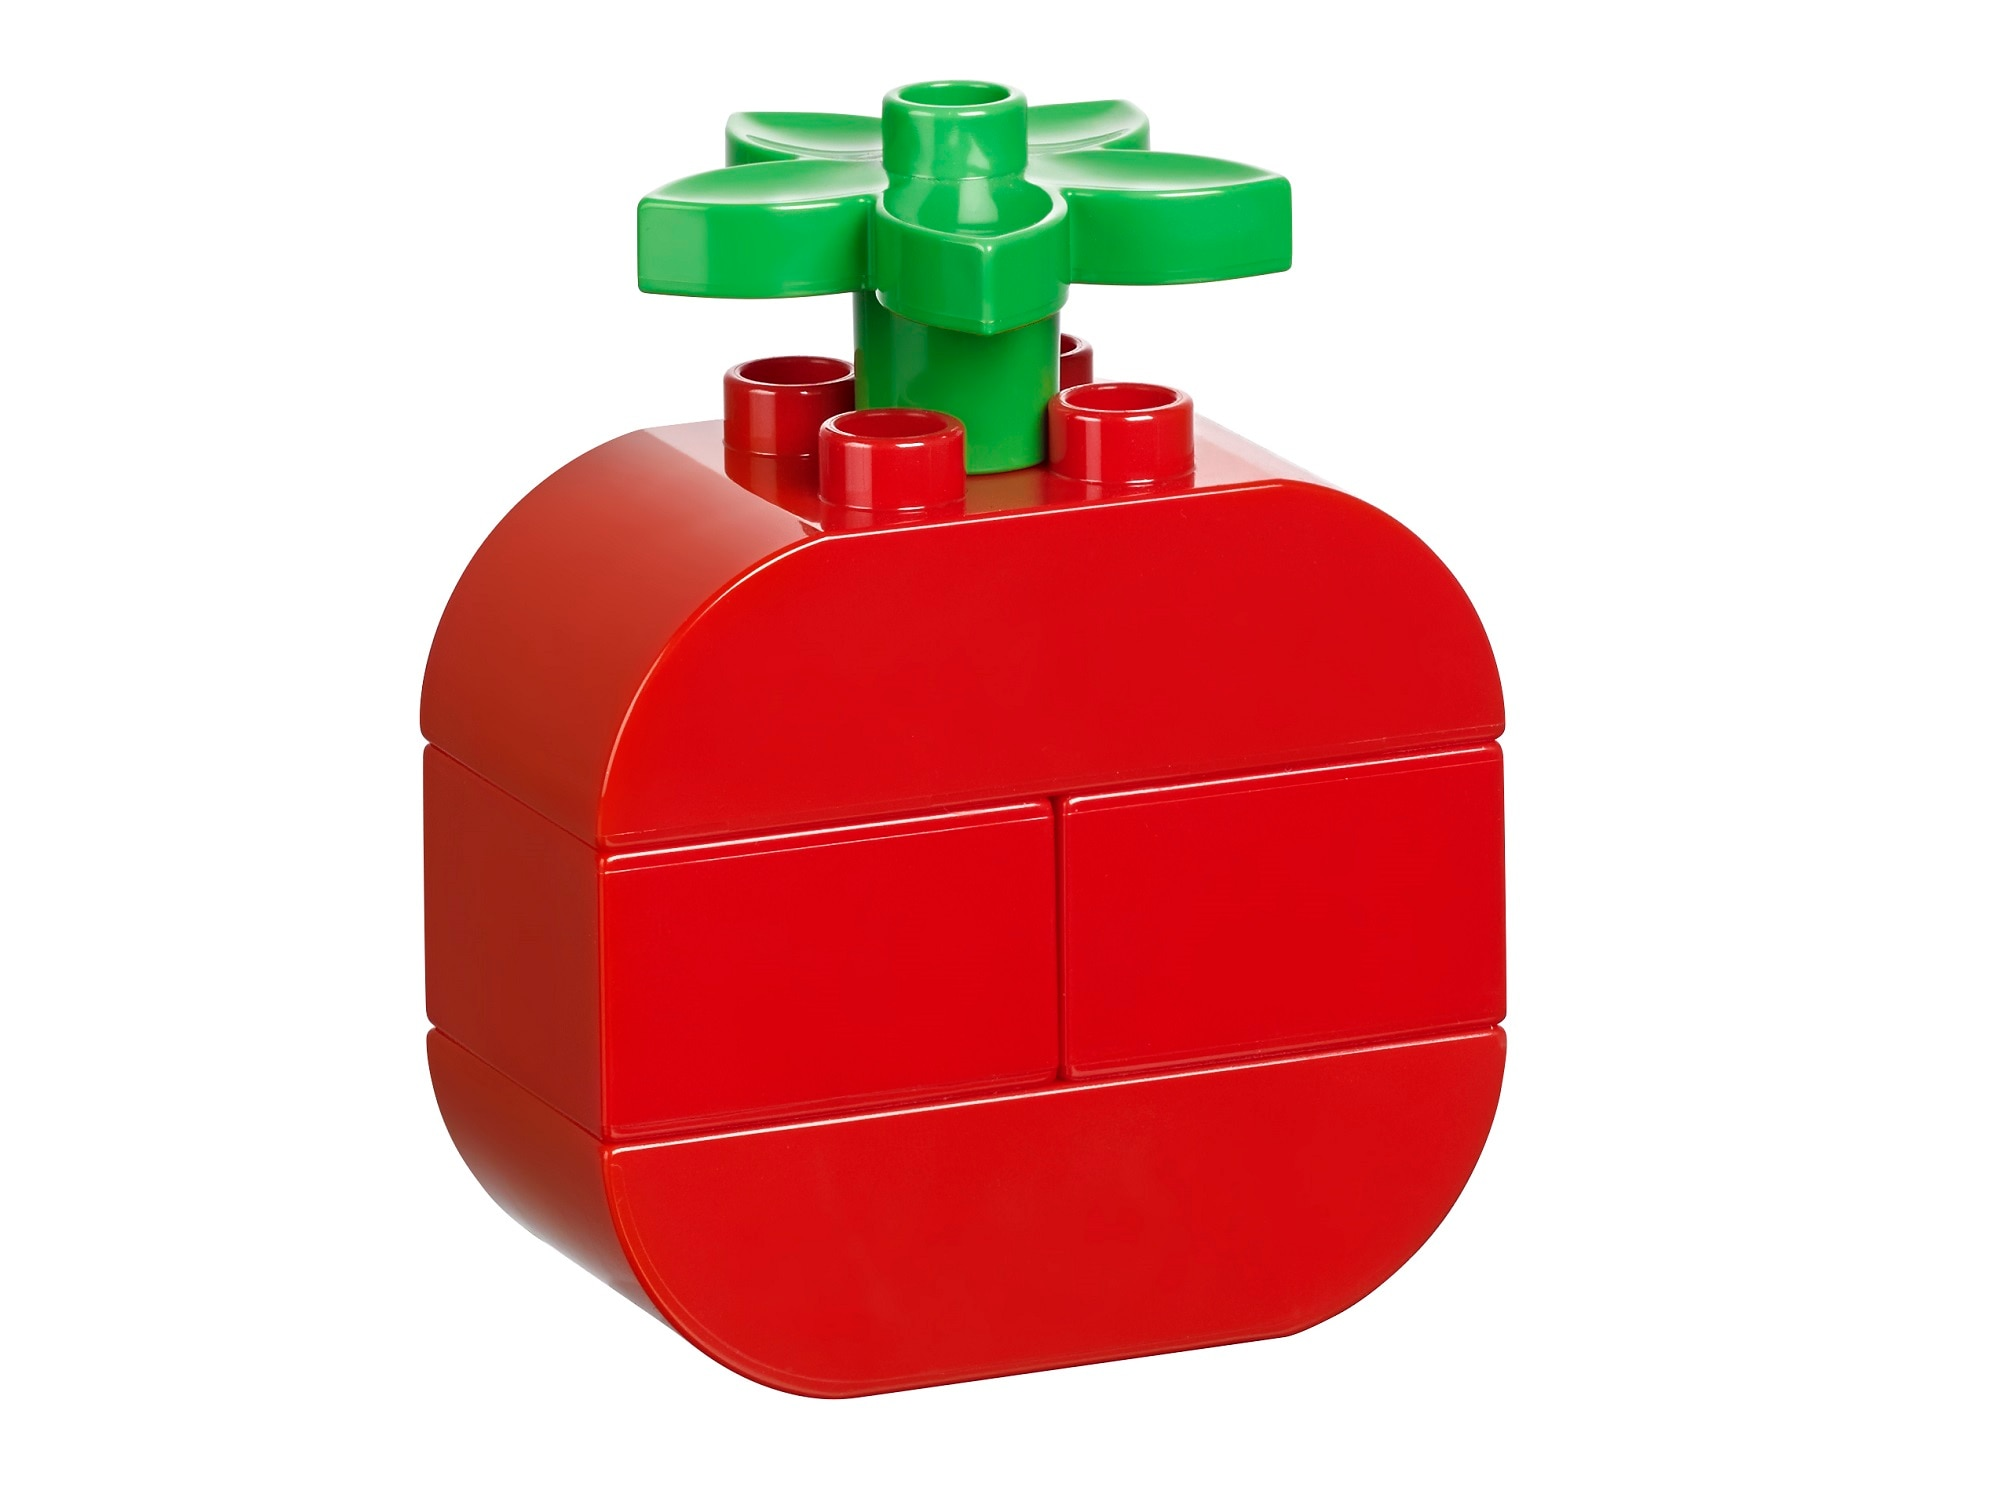 LEGO DUPLO Apple